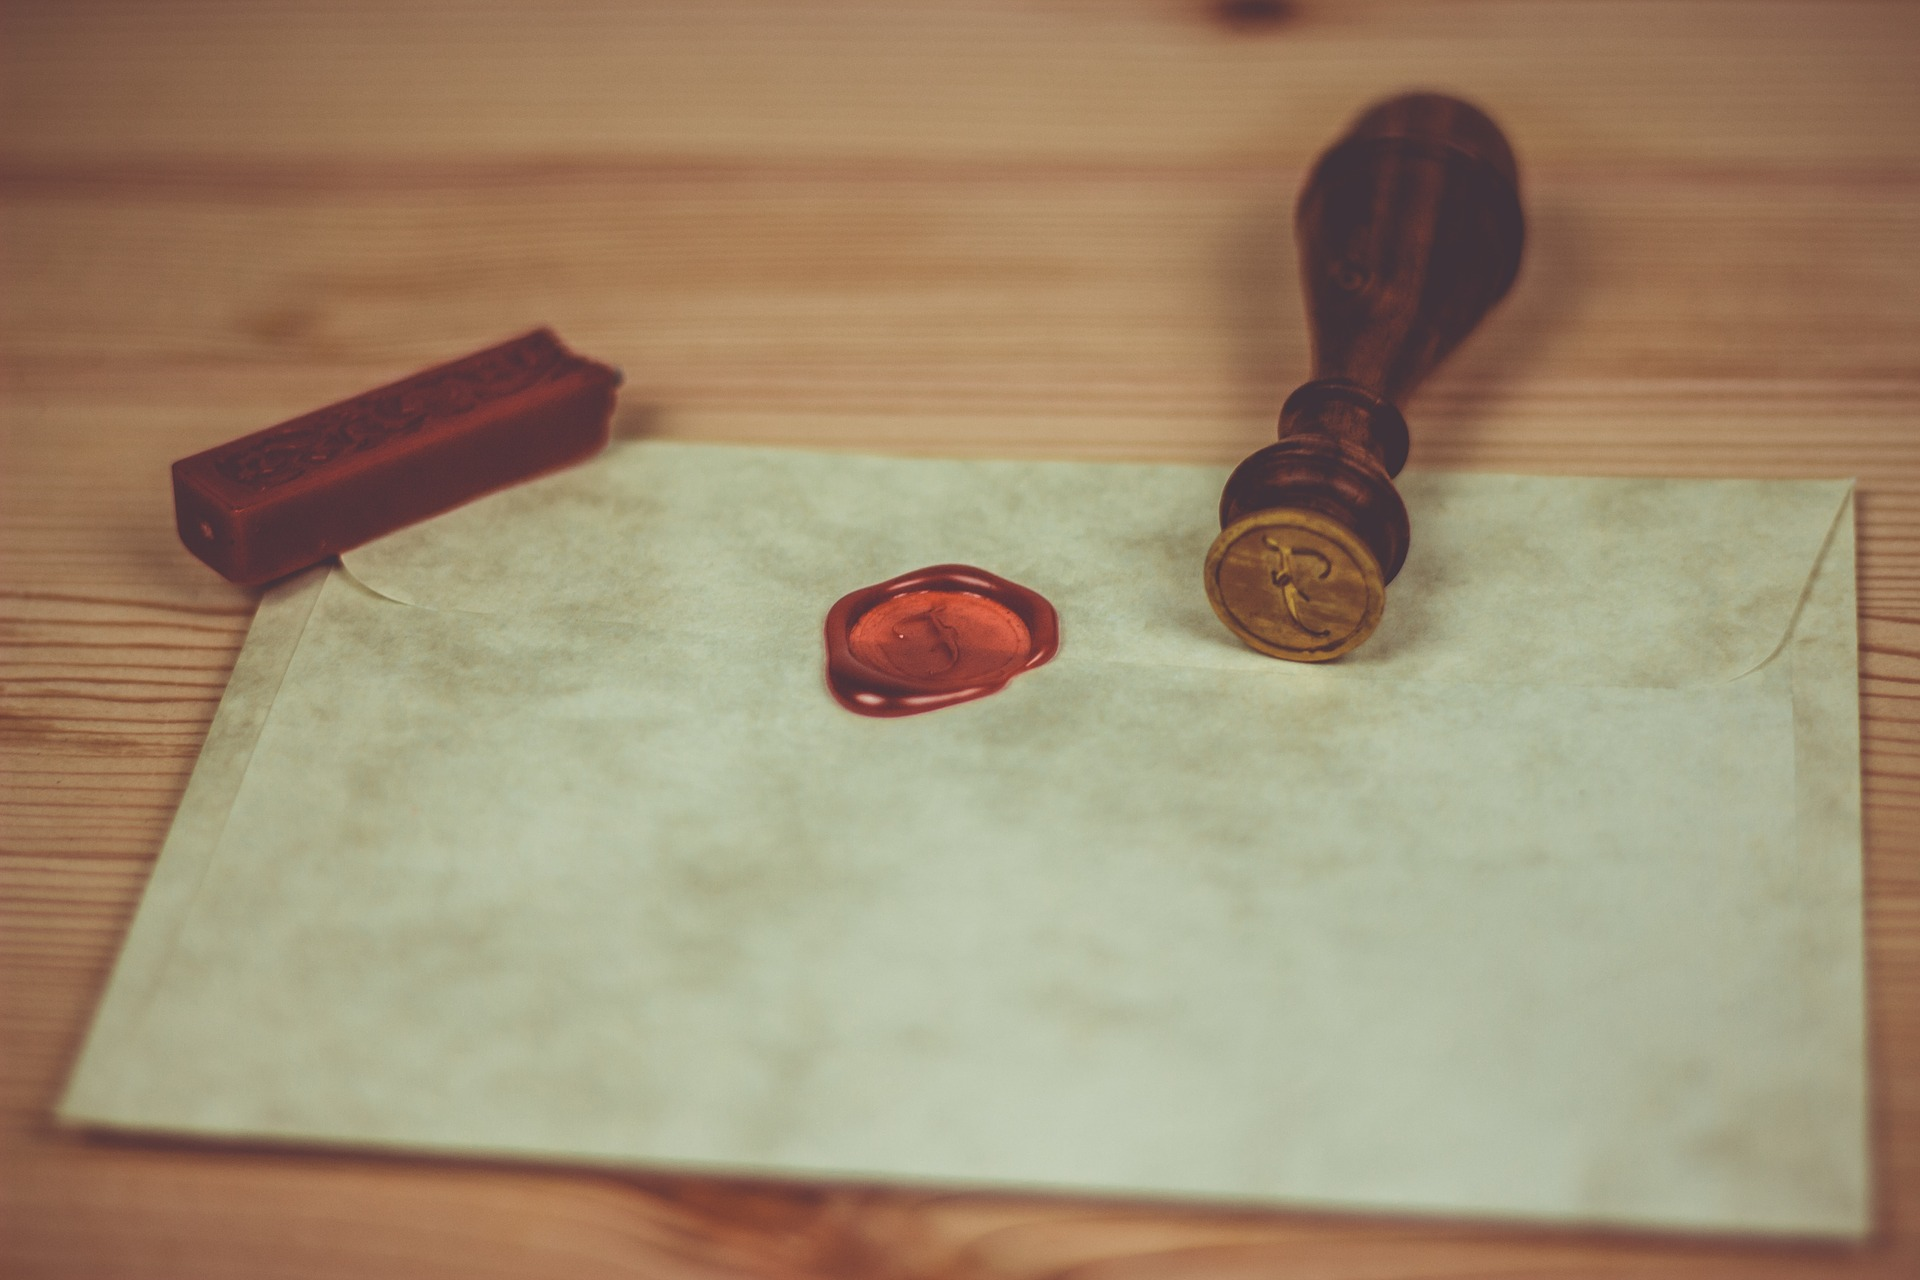 Letter lying on a wooden table with a red wax stamp pressed into the centre.